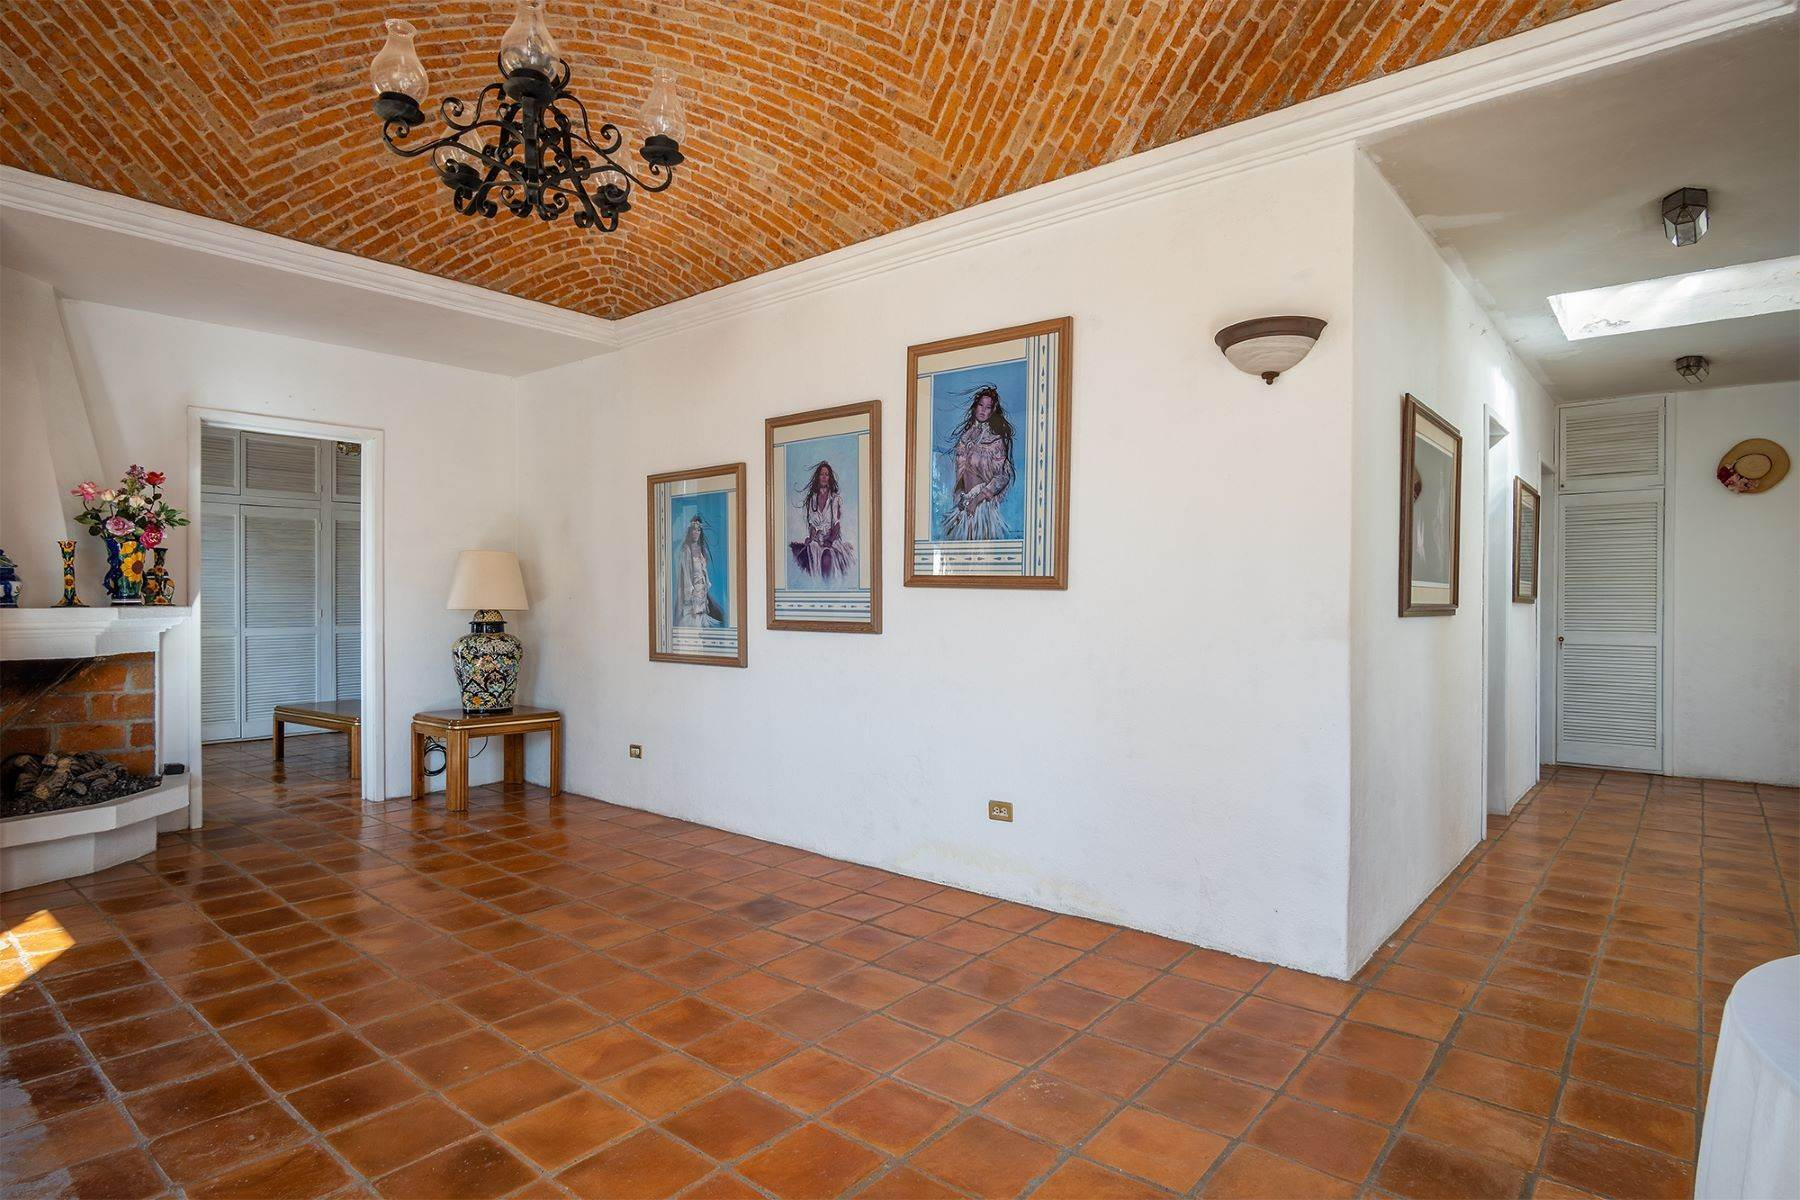 9. Single Family Homes for Sale at Pila Seca 2B, Centro Histórico San Miguel De Allende, Guanajuato 37700 Mexico